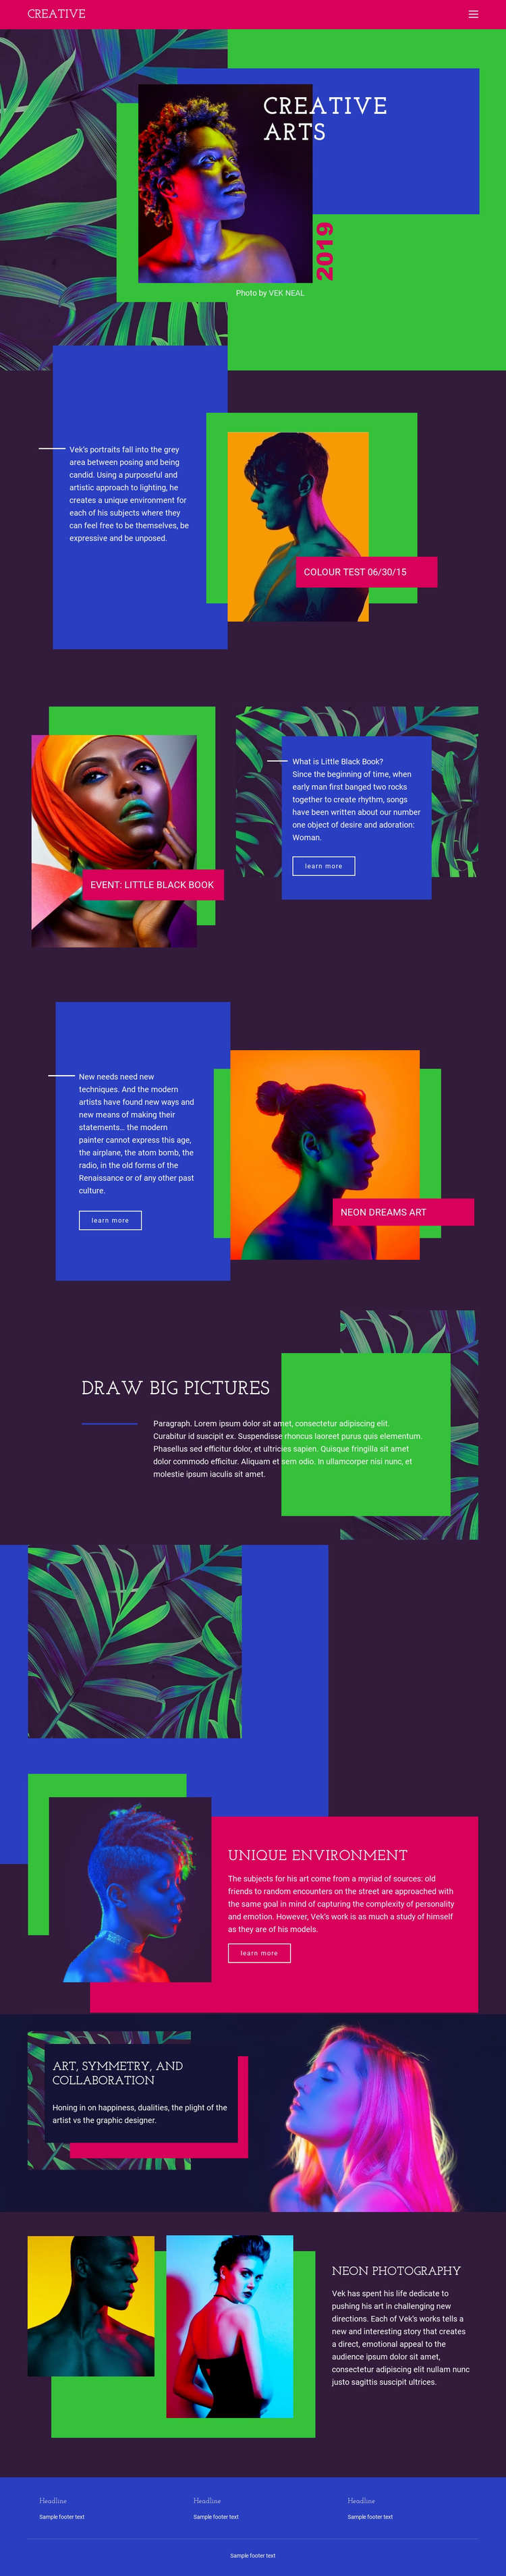 Creative Art Ideas Website Template